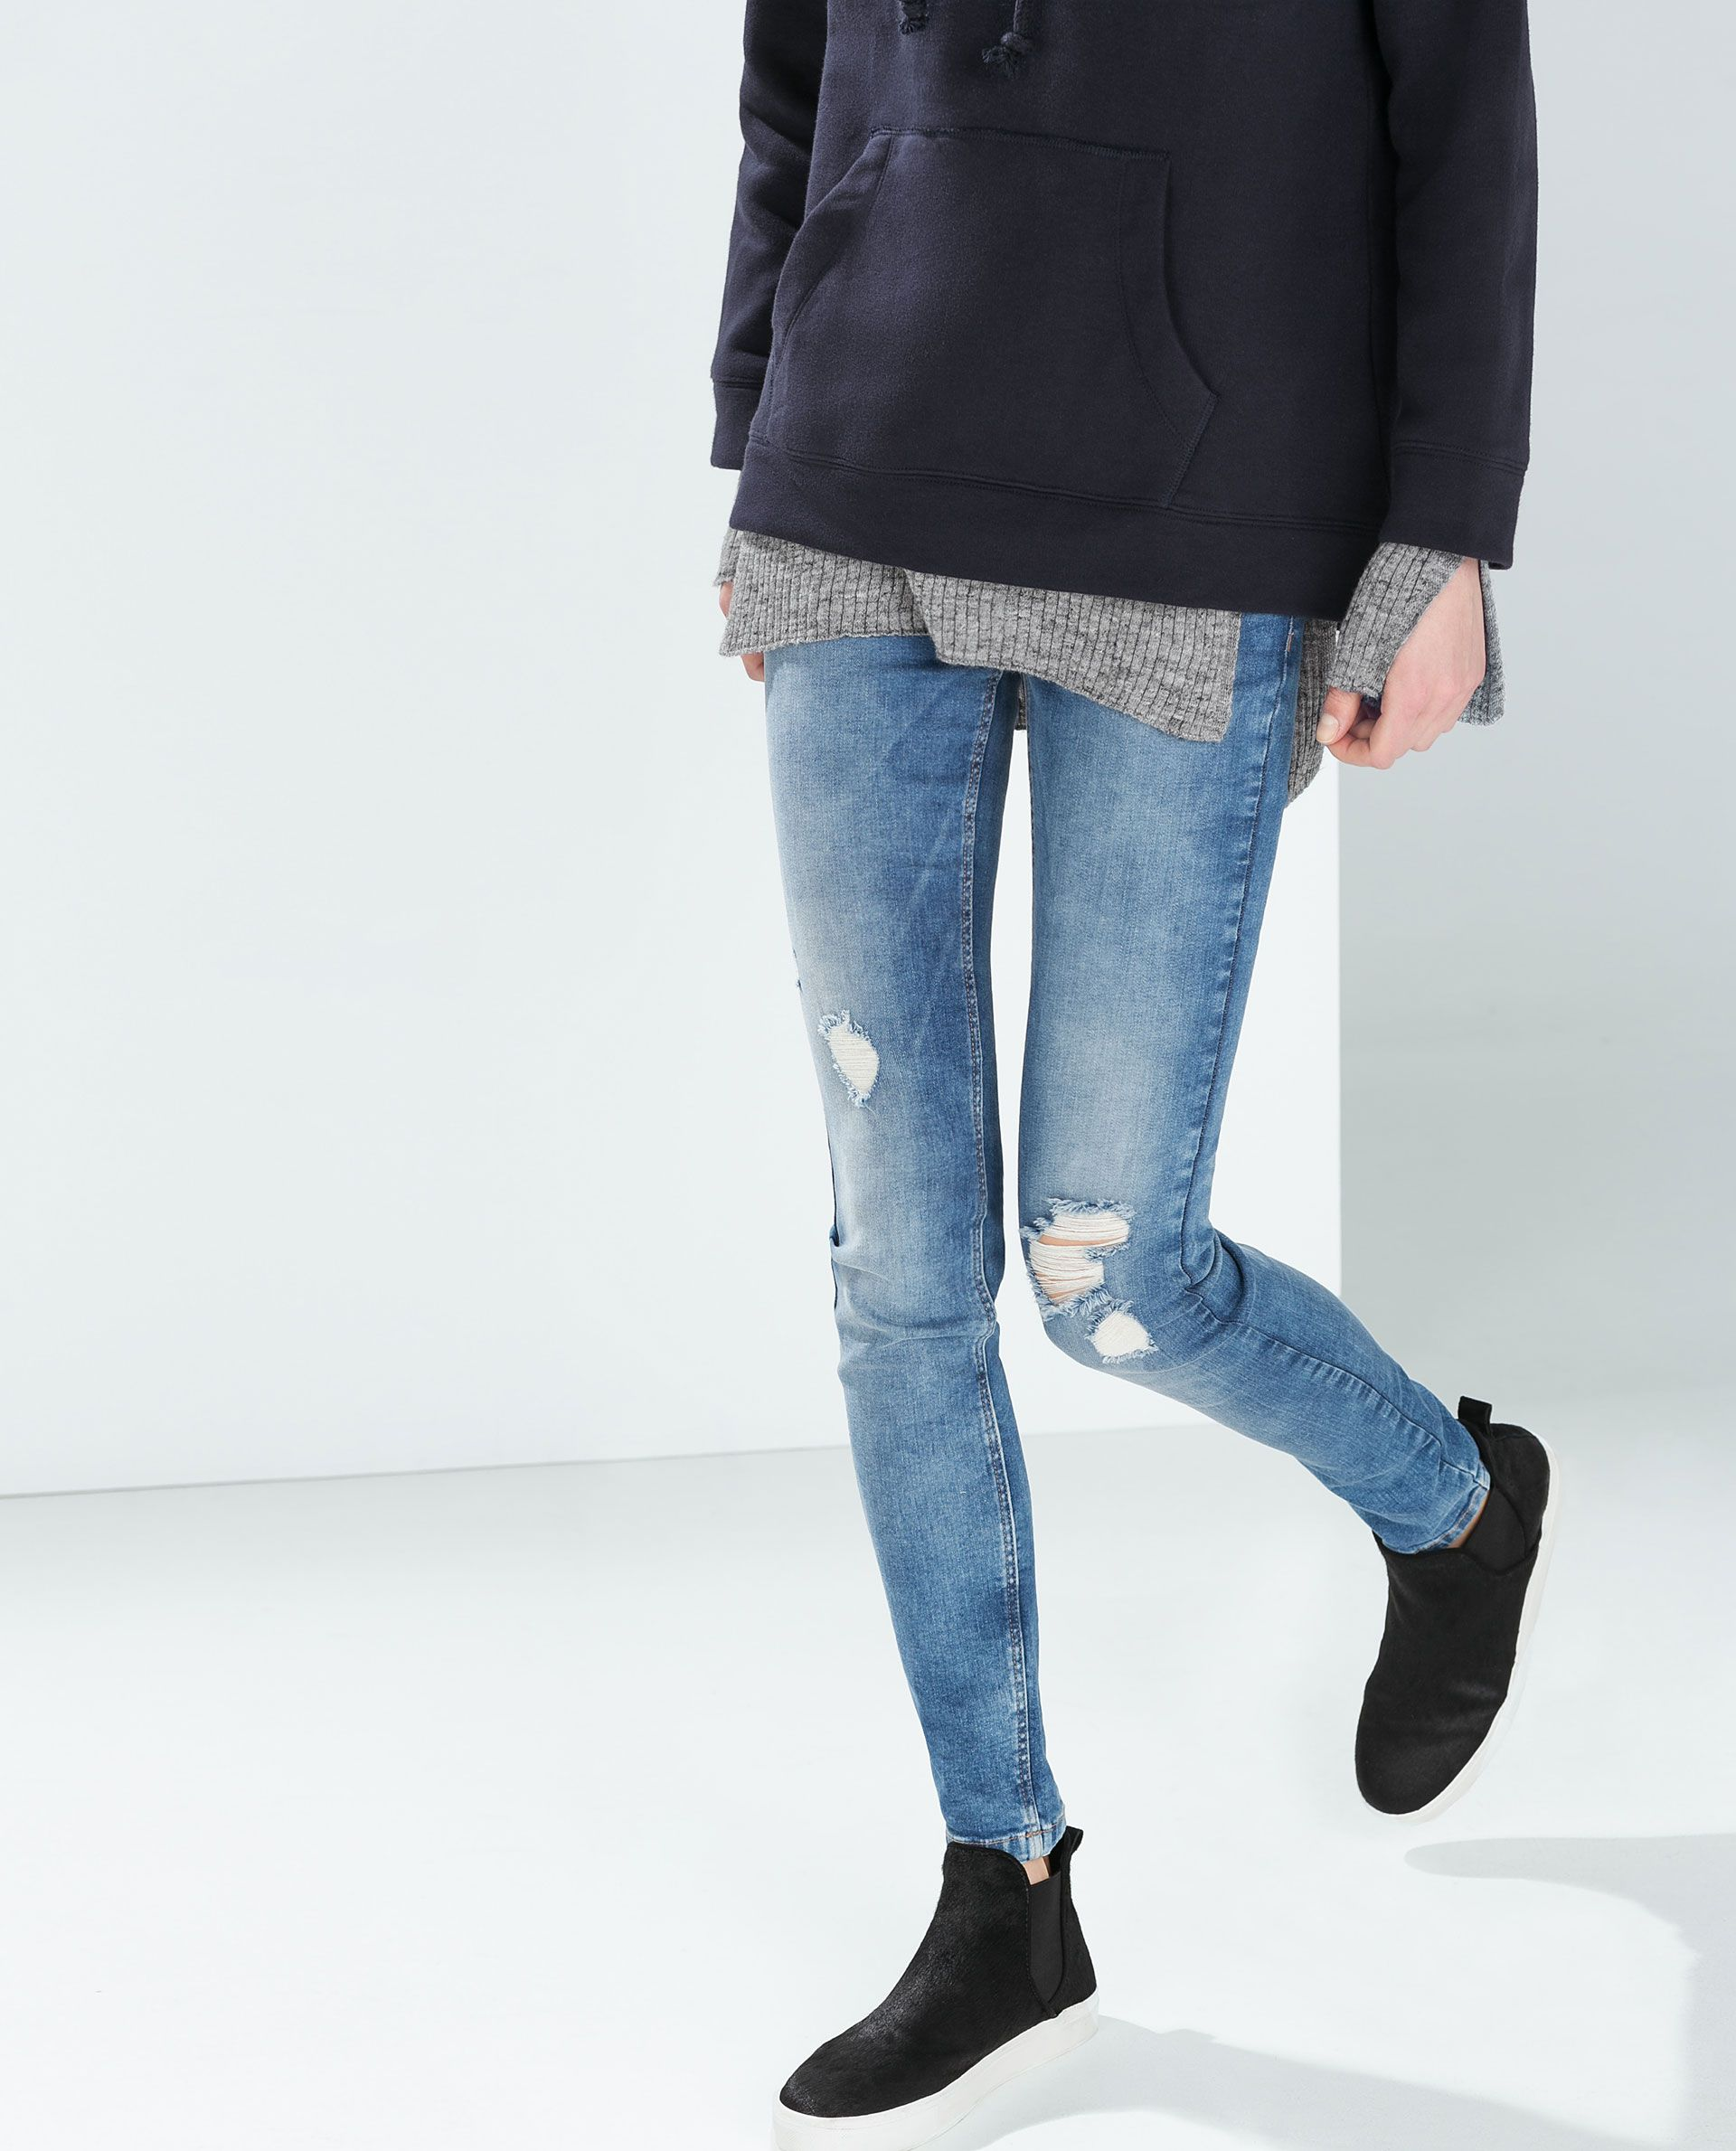 Slim Denim by Zara - Style - fall - casual - outfit